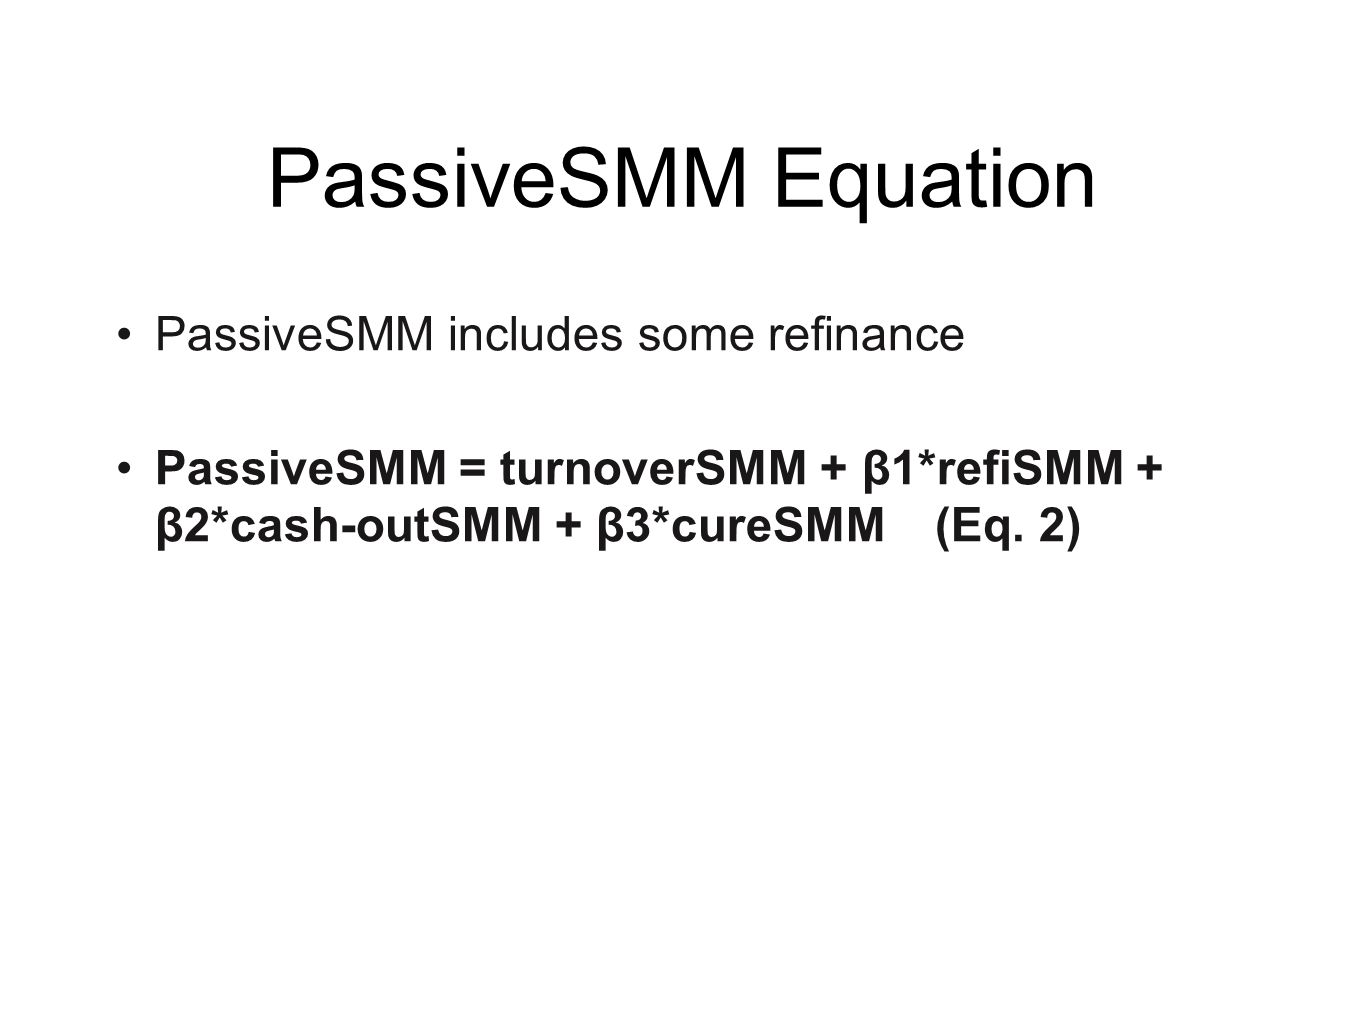 TotalSMM betas represent the amount of each SMM relative to the SMMs from the activeSMM.